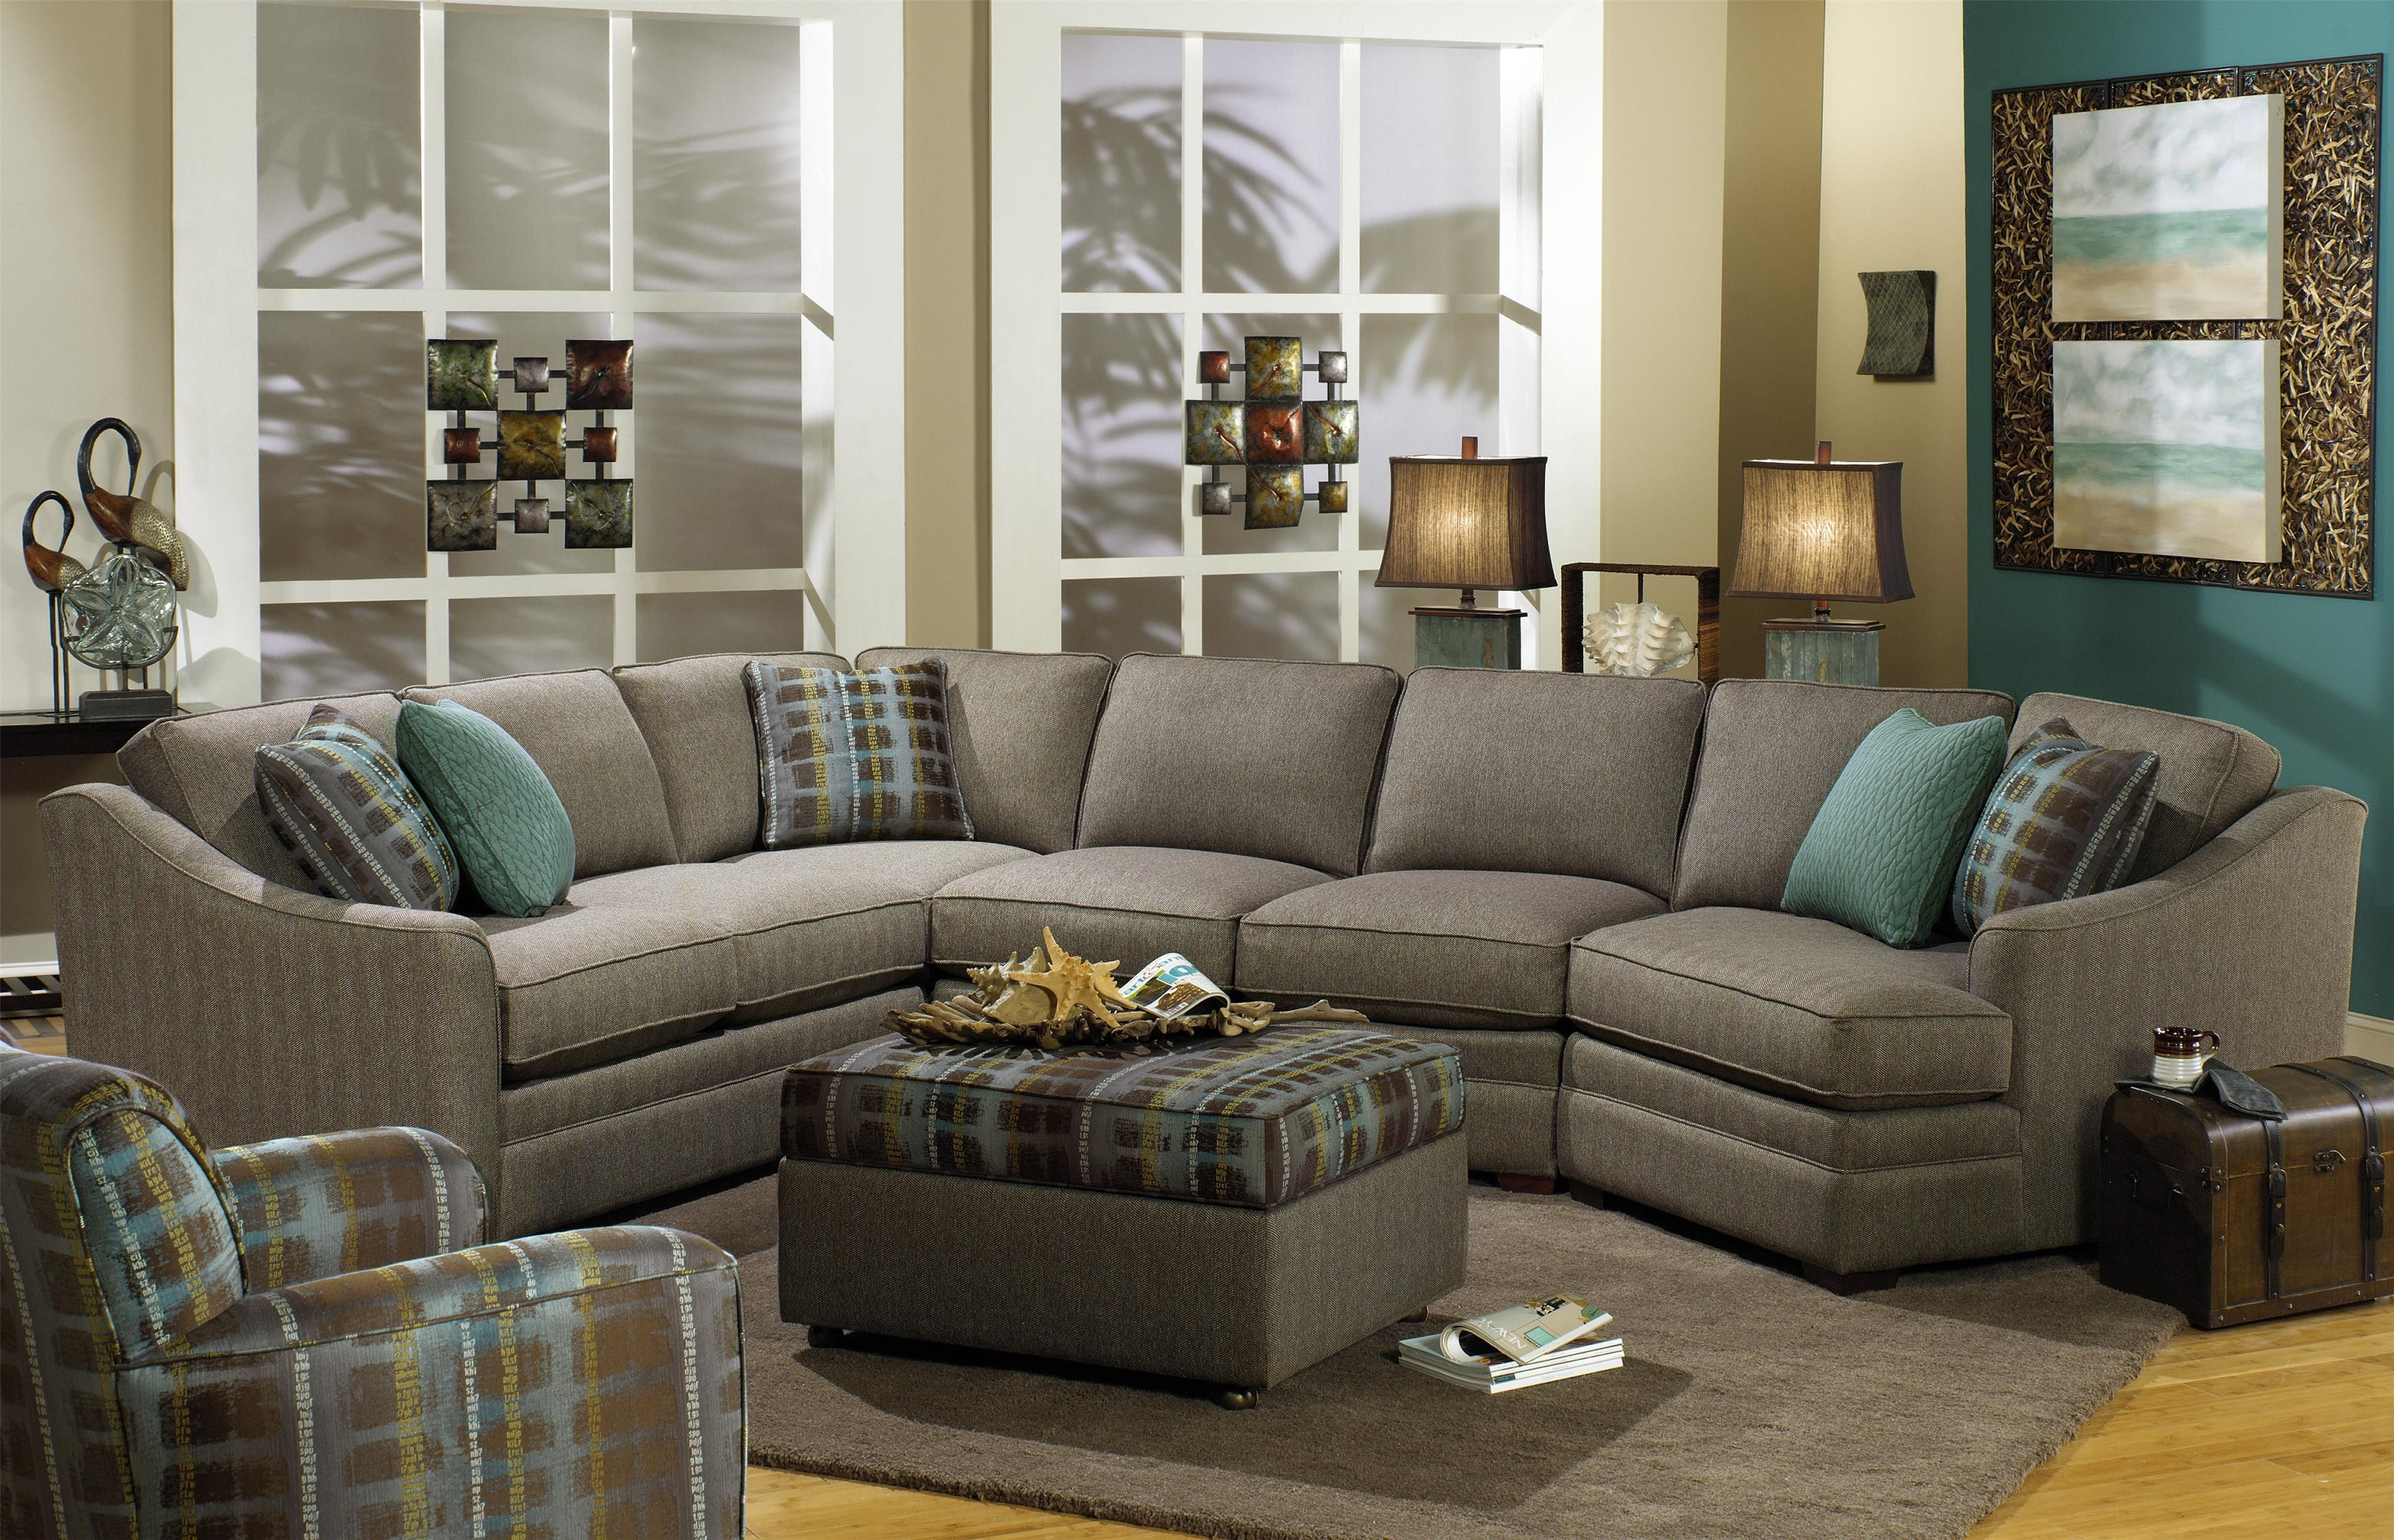 Craftmaster Custom Collection Customizable Sectional With RAF Cuddler    Belfort Furniture   Sofa Sectional Washington DC, Northern Virginia,  Maryland And ...